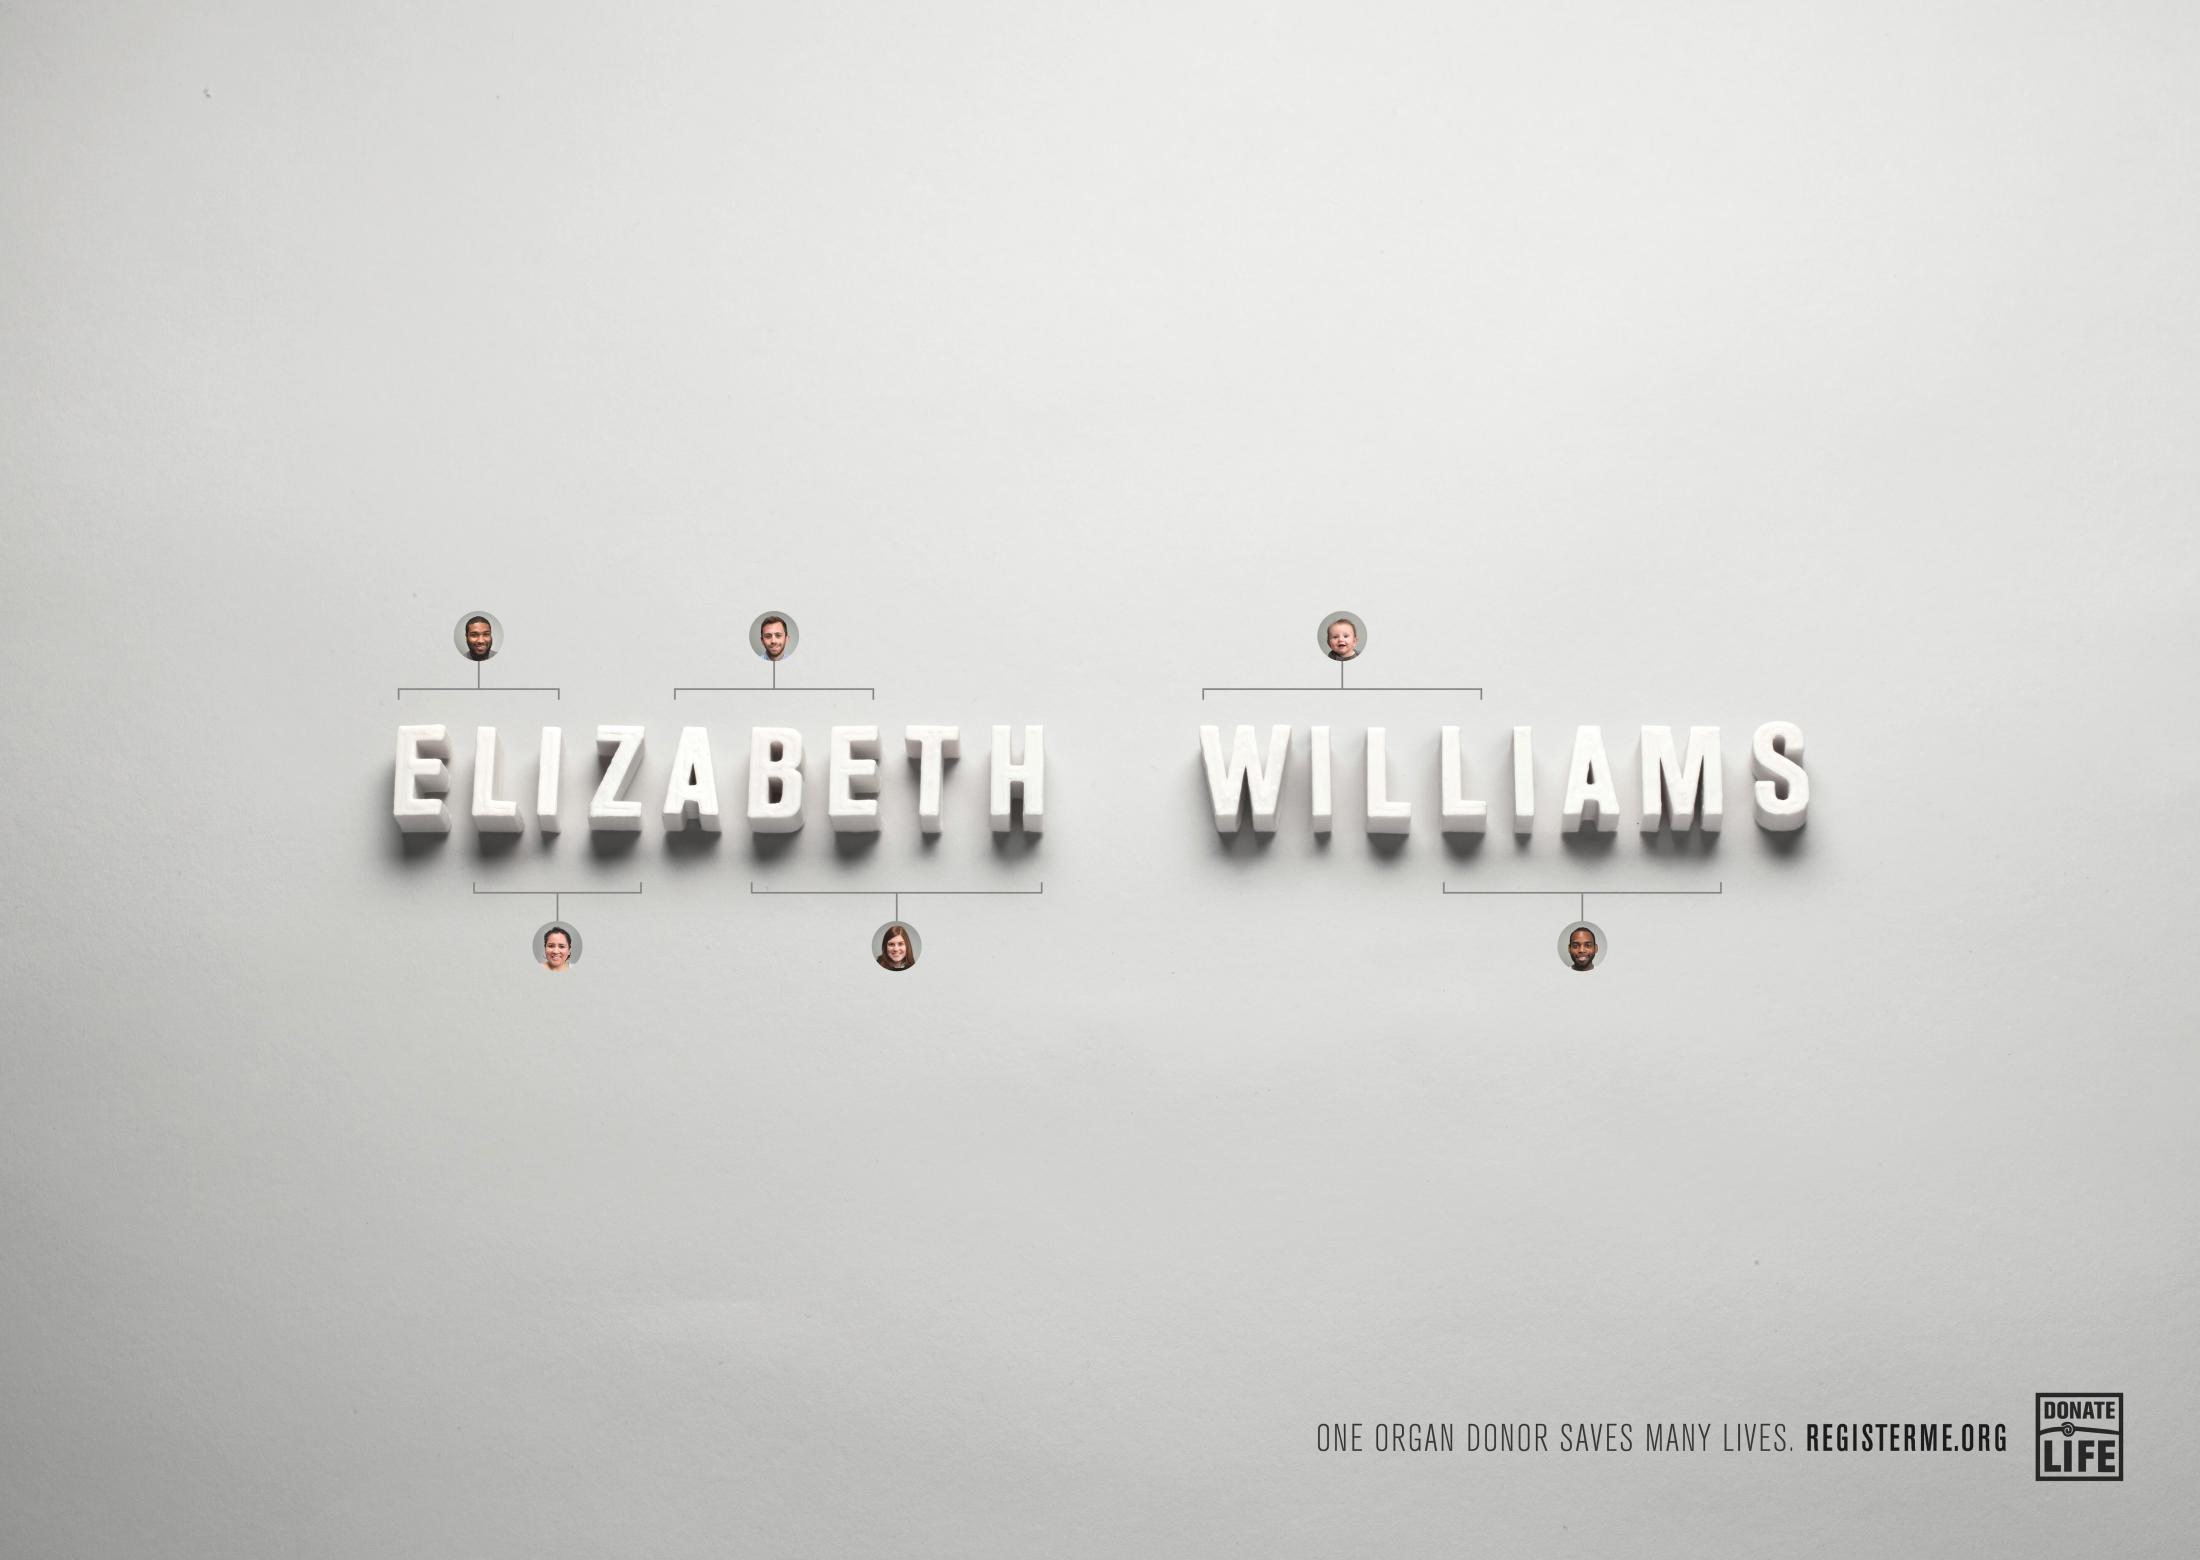 Image Media for Elizabeth Williams